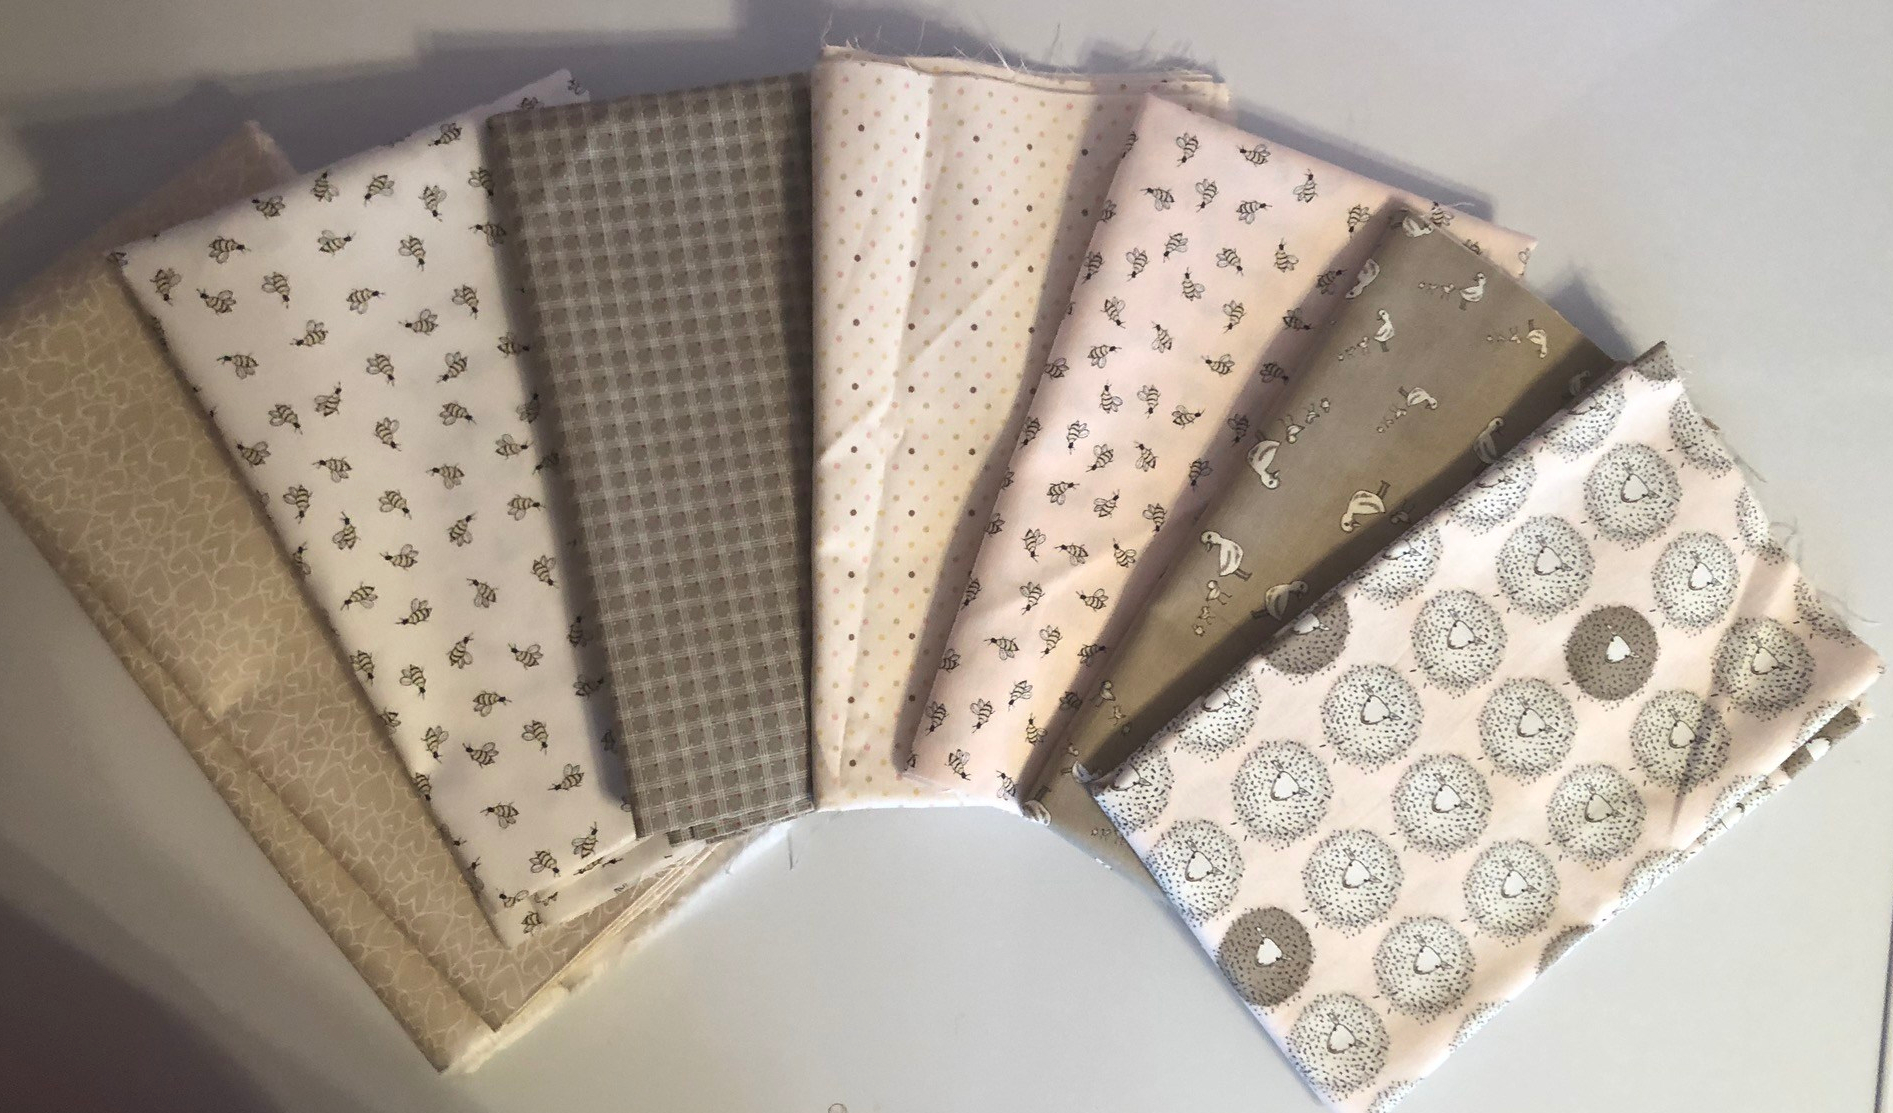 Dainty Dickens quilt fabric